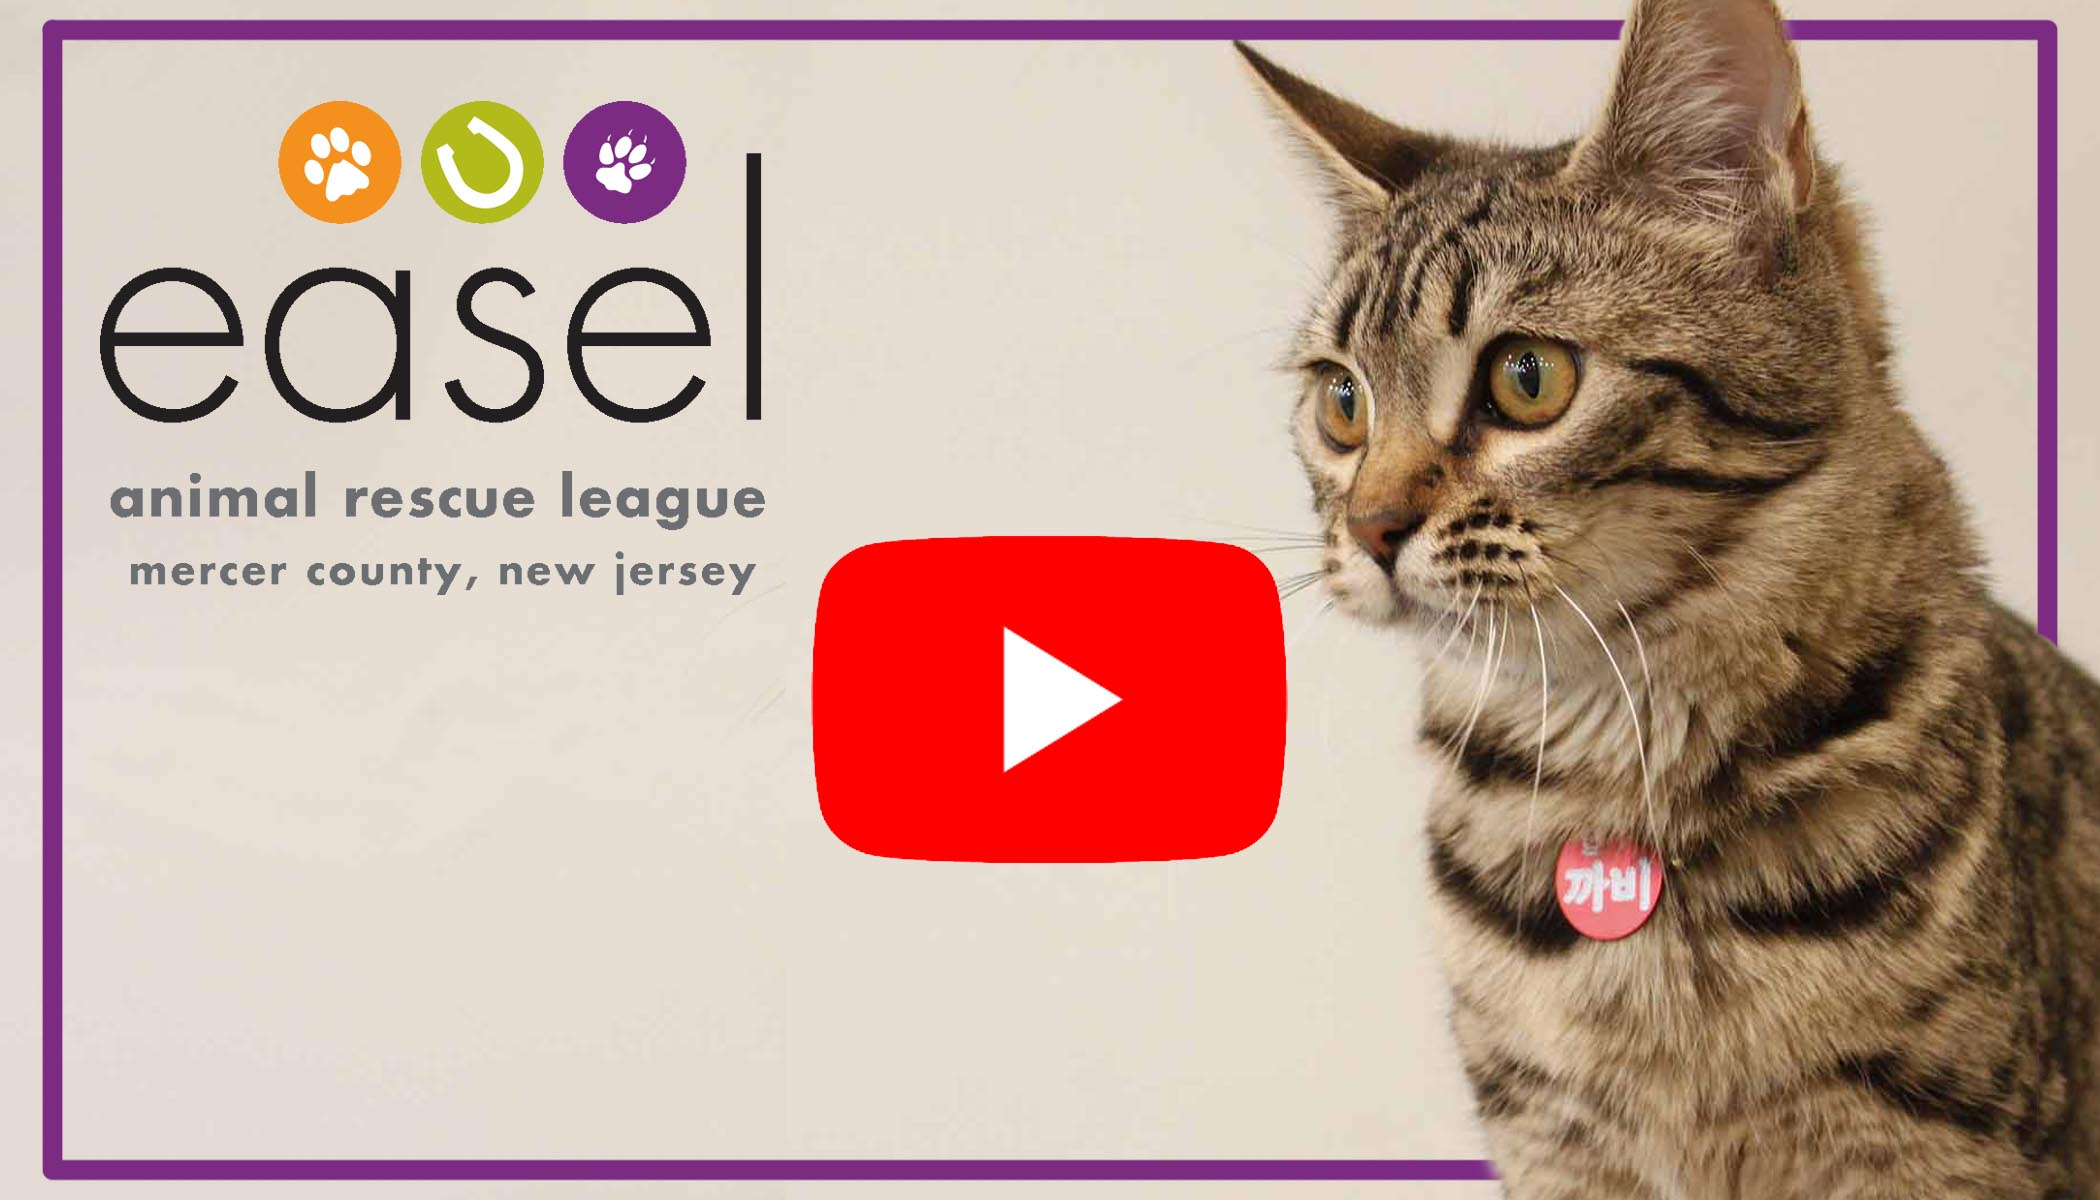 Video Link to Share Why to Donate and How EASEL Animal Rescue League Shelter & Pet Adoption Center Utilize Individual and Corporate Donations